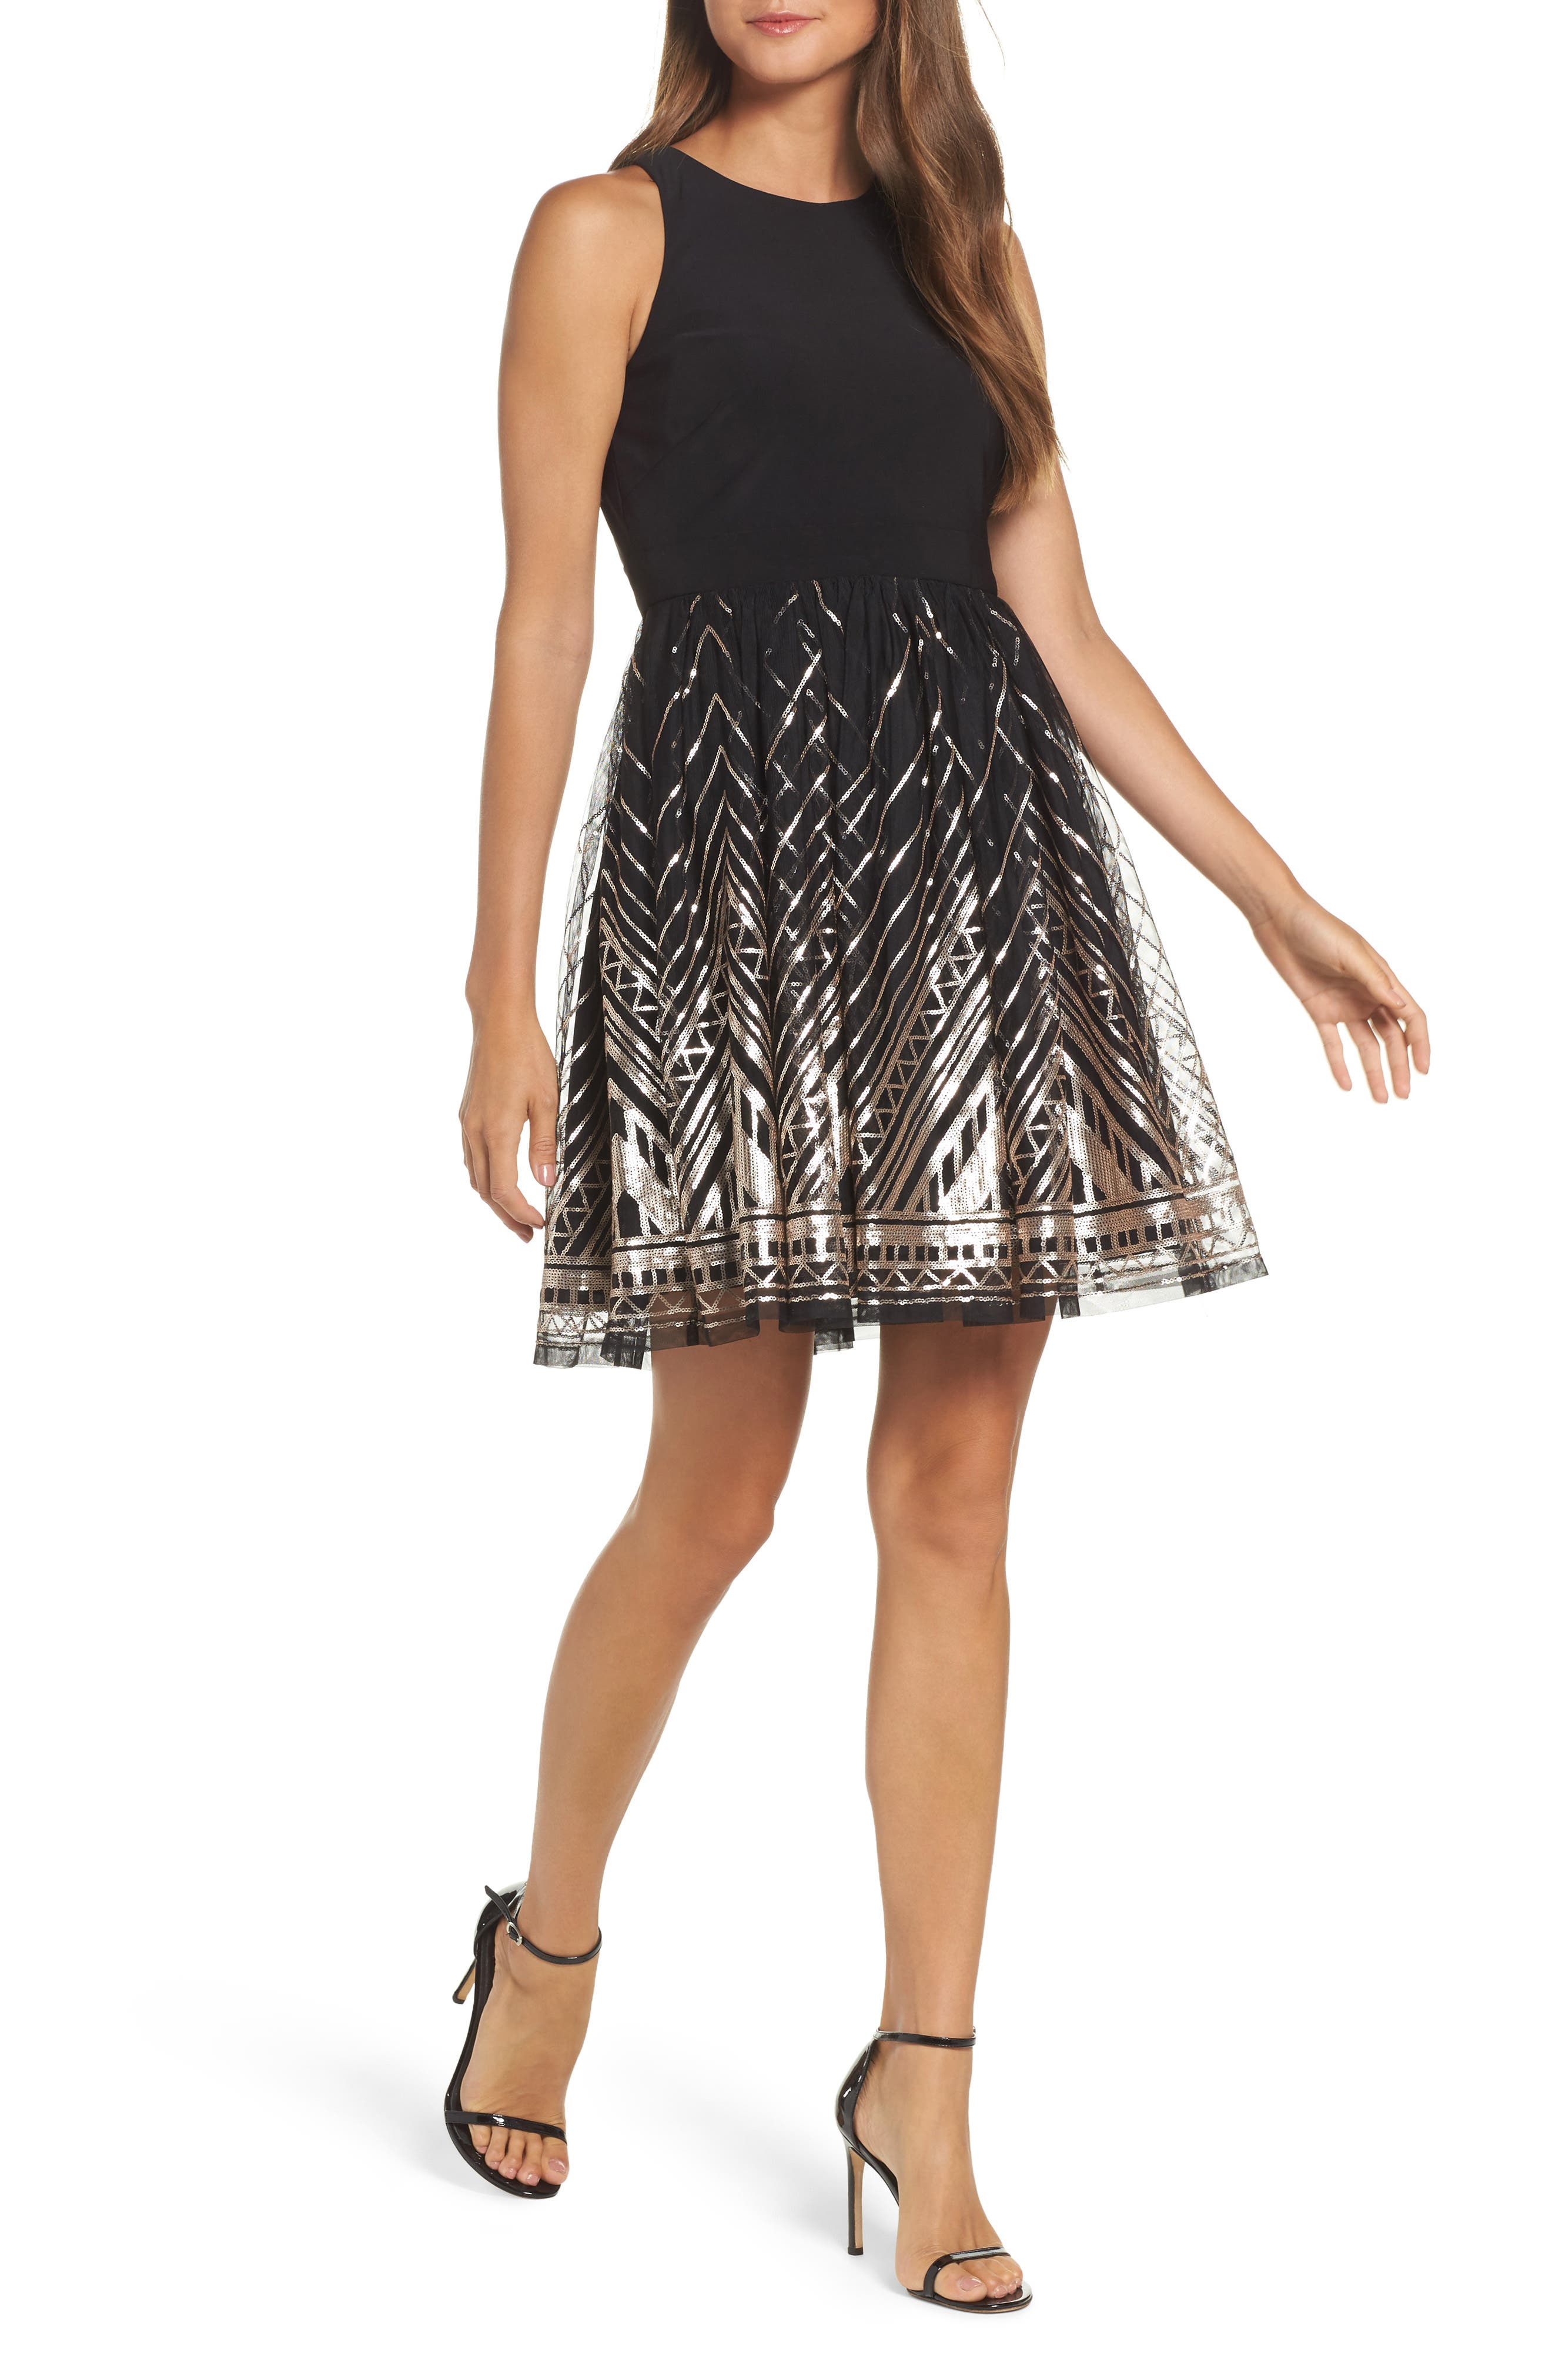 VINCE CAMUTO, Sequin Fit & Flare Cocktail Dress, Main thumbnail 1, color, BLACK/ GOLD